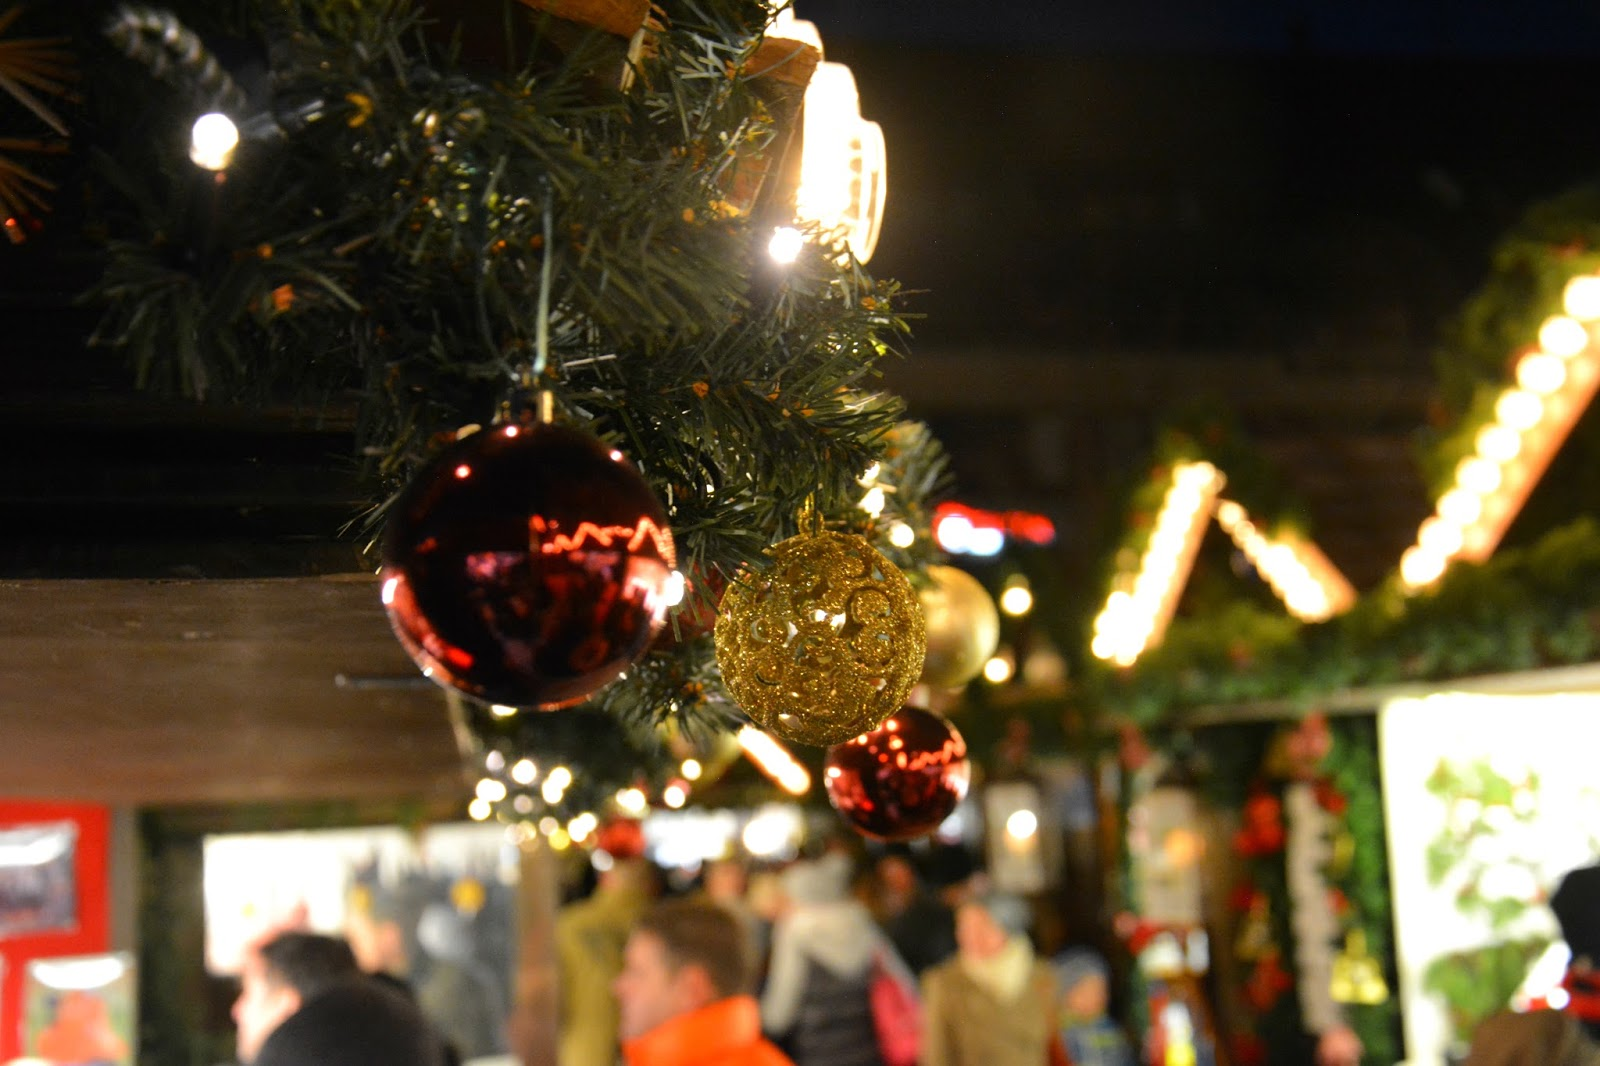 bauble decoration on Christmas market huts